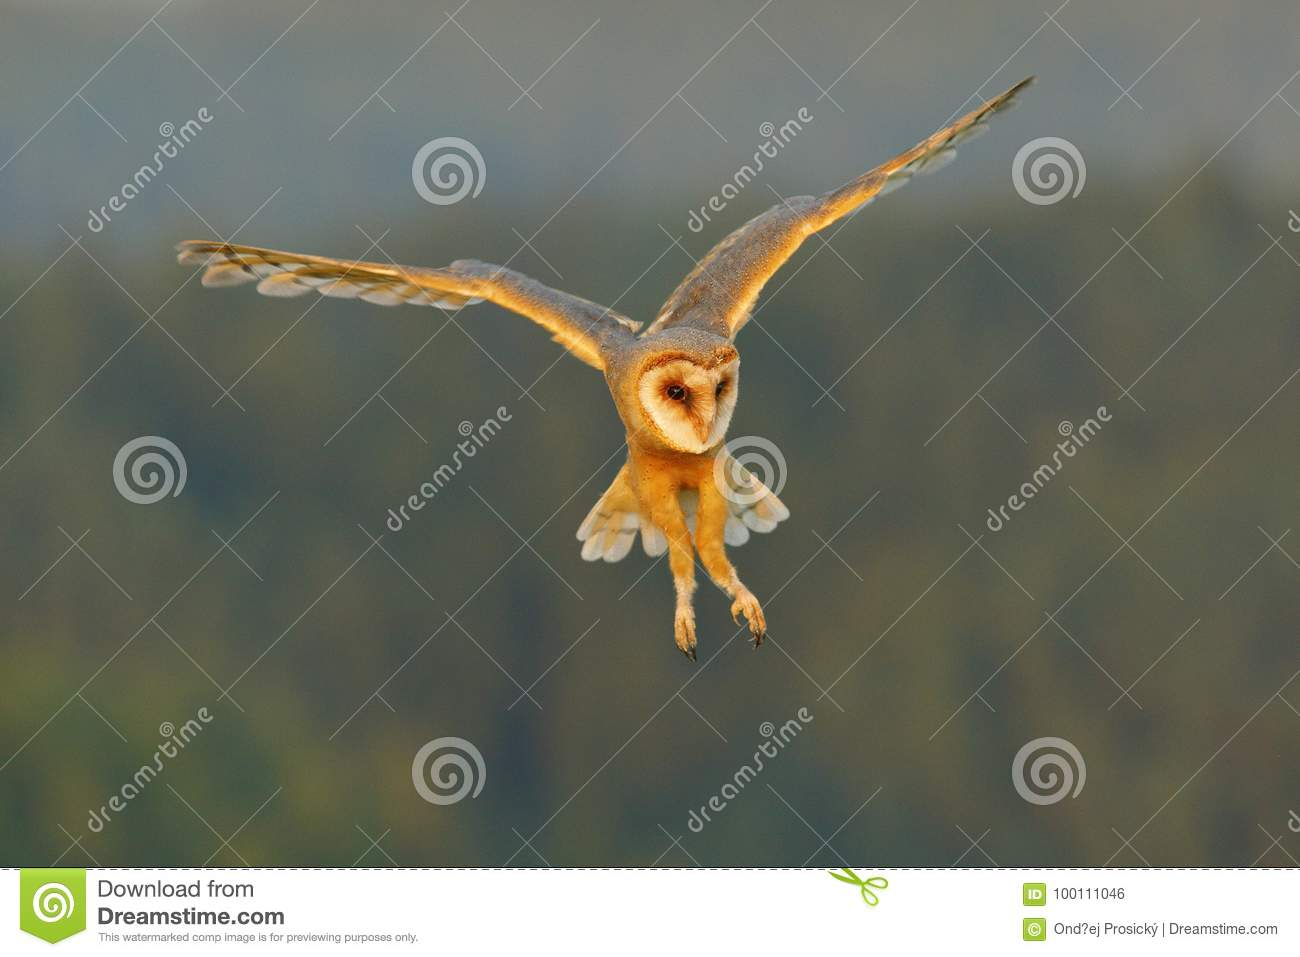 Barn Owl, nice light bird in flight, in the grass, outstretched wings, action wildlife scene from nature, United Kingdom . Forest